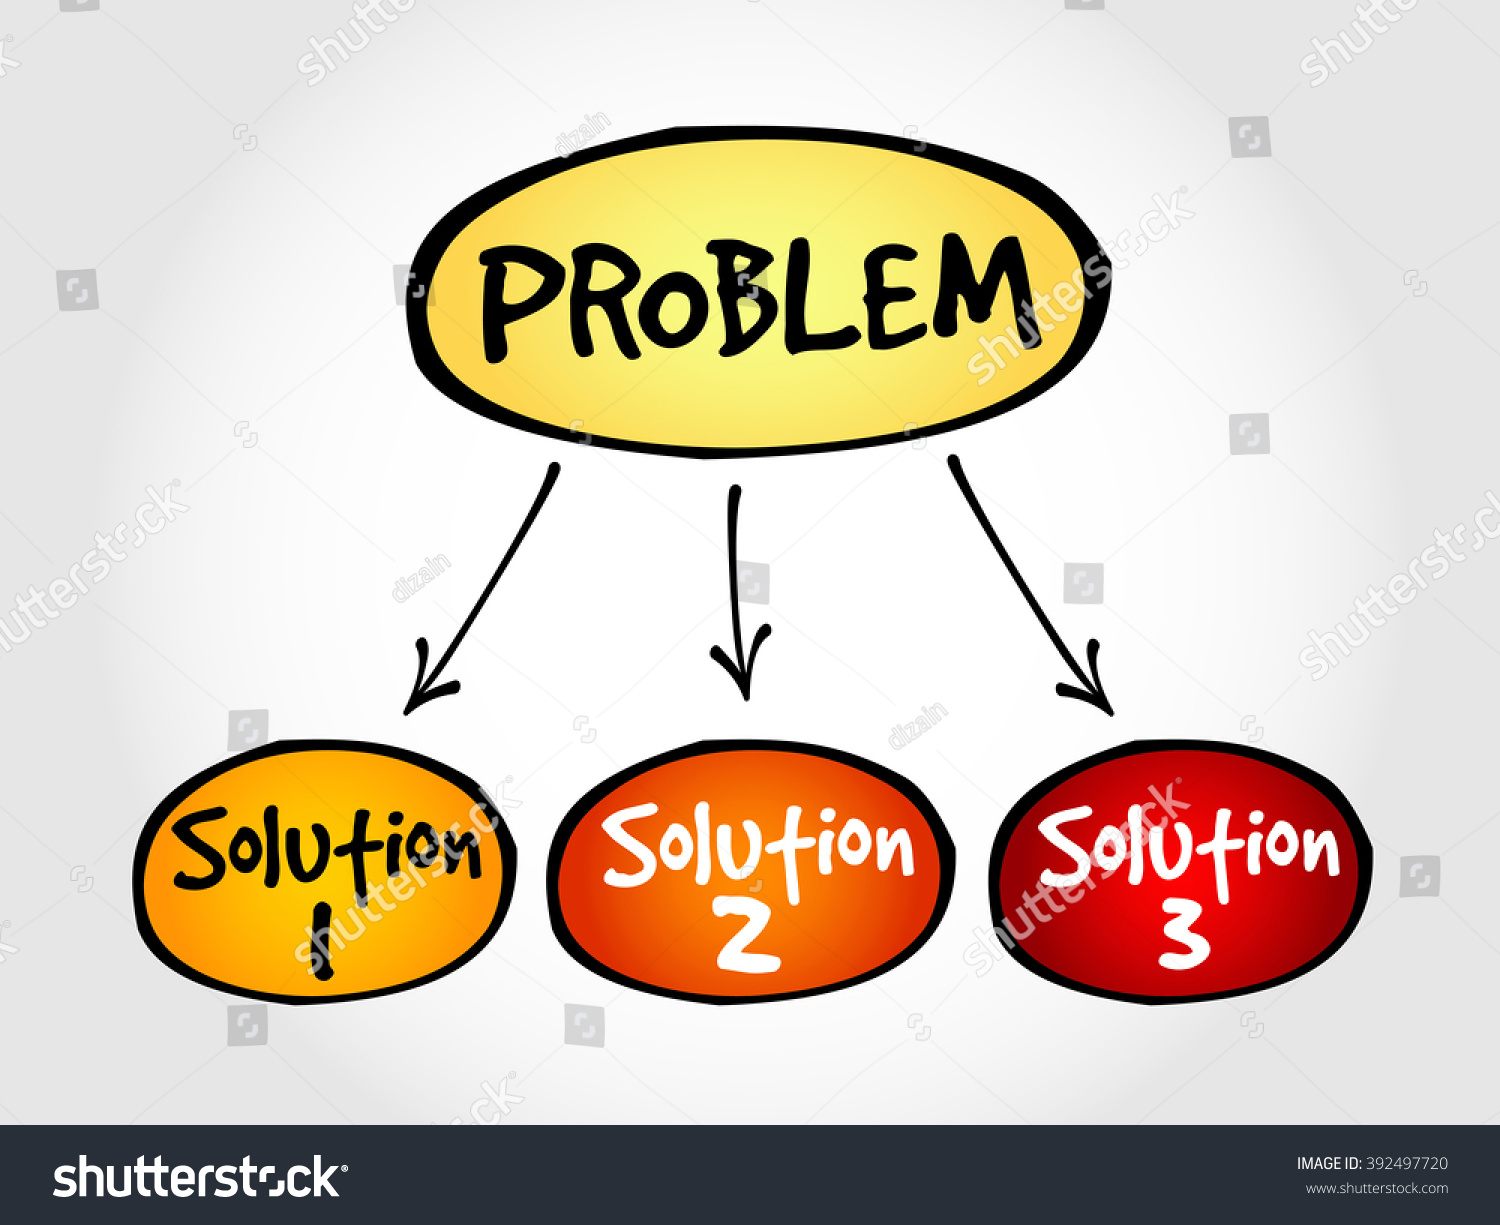 melcrum aiding problem solving Problem-solving therapy is thought to be an effective therapy approach because it helps people deal more effectively with the wide range of difficulties and stressful problems that occur in everyday living.